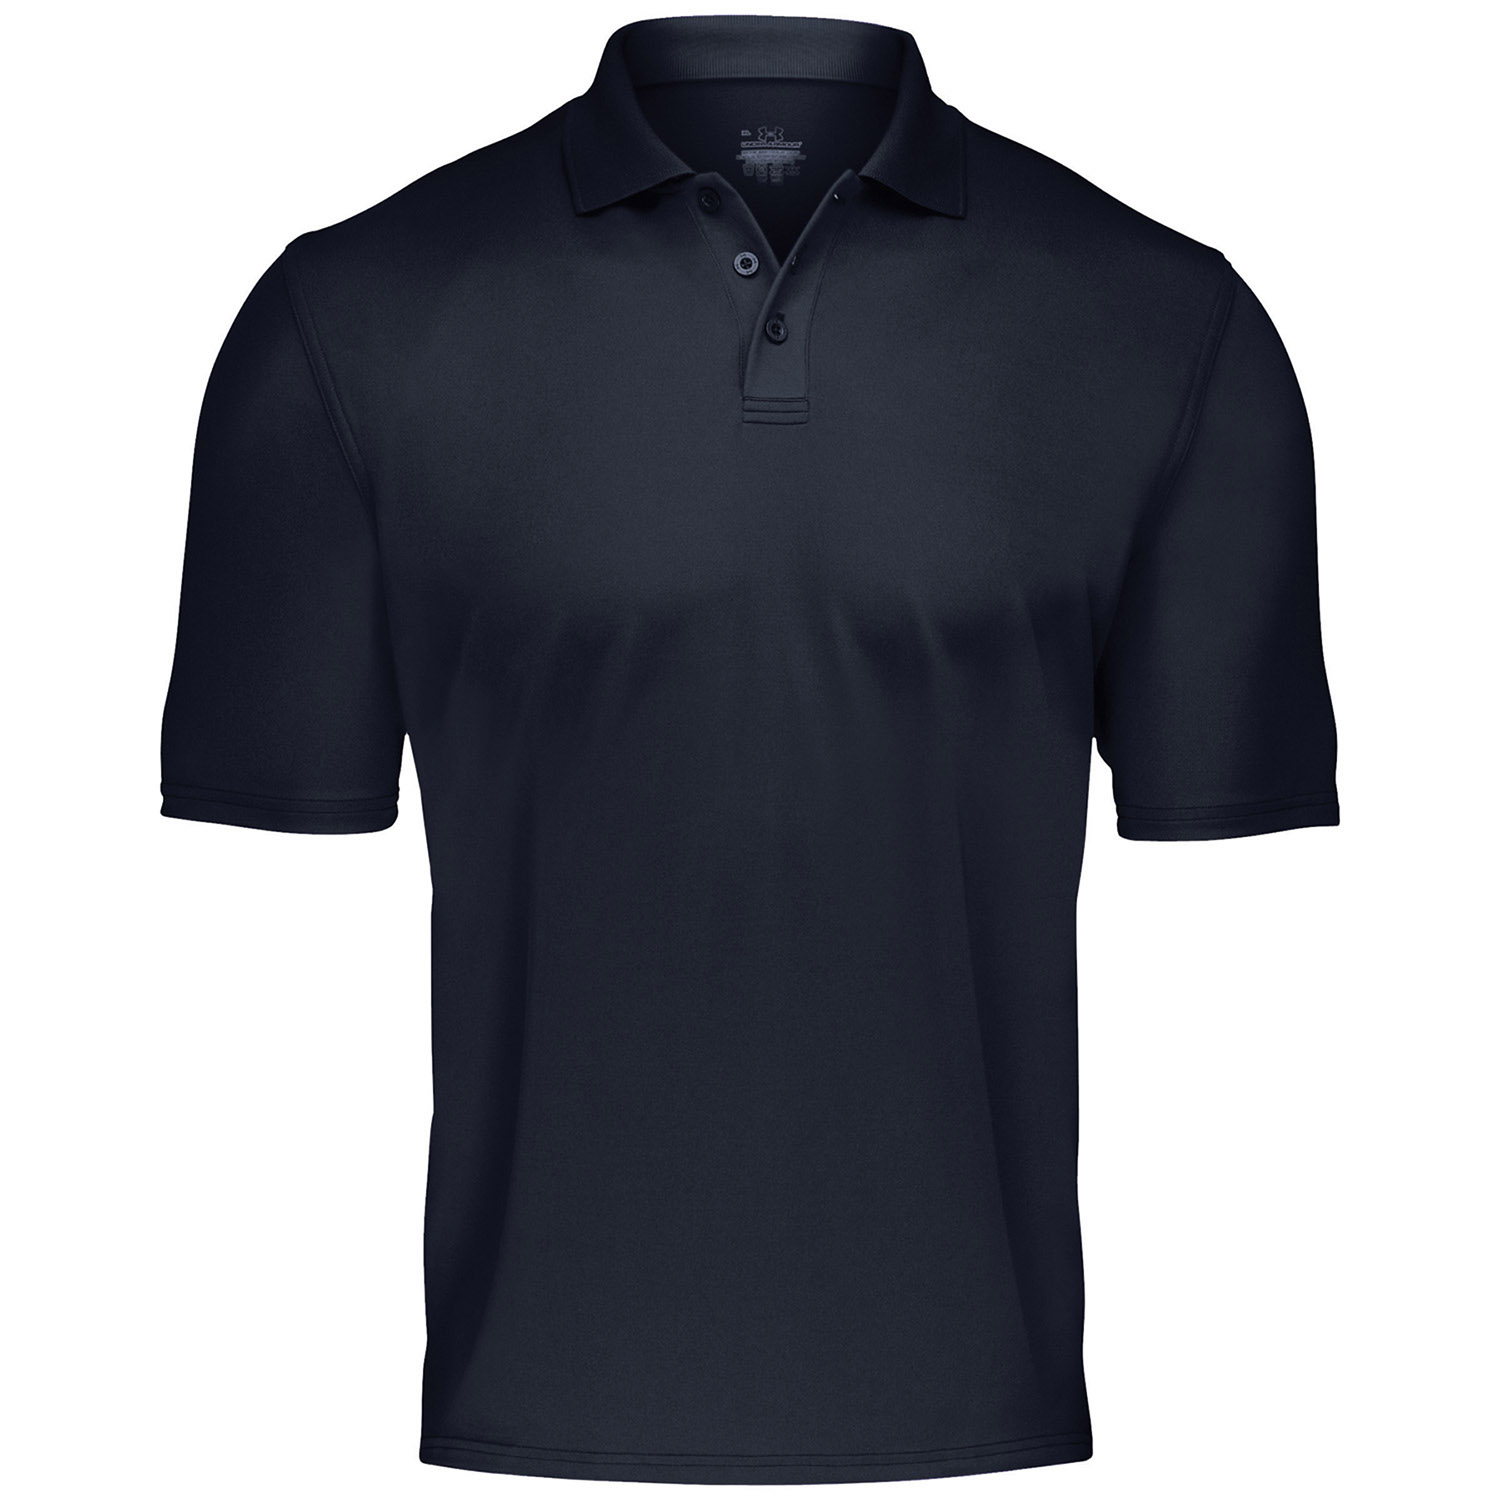 Under armour tactical range polo at galls for Under armor polo shirts